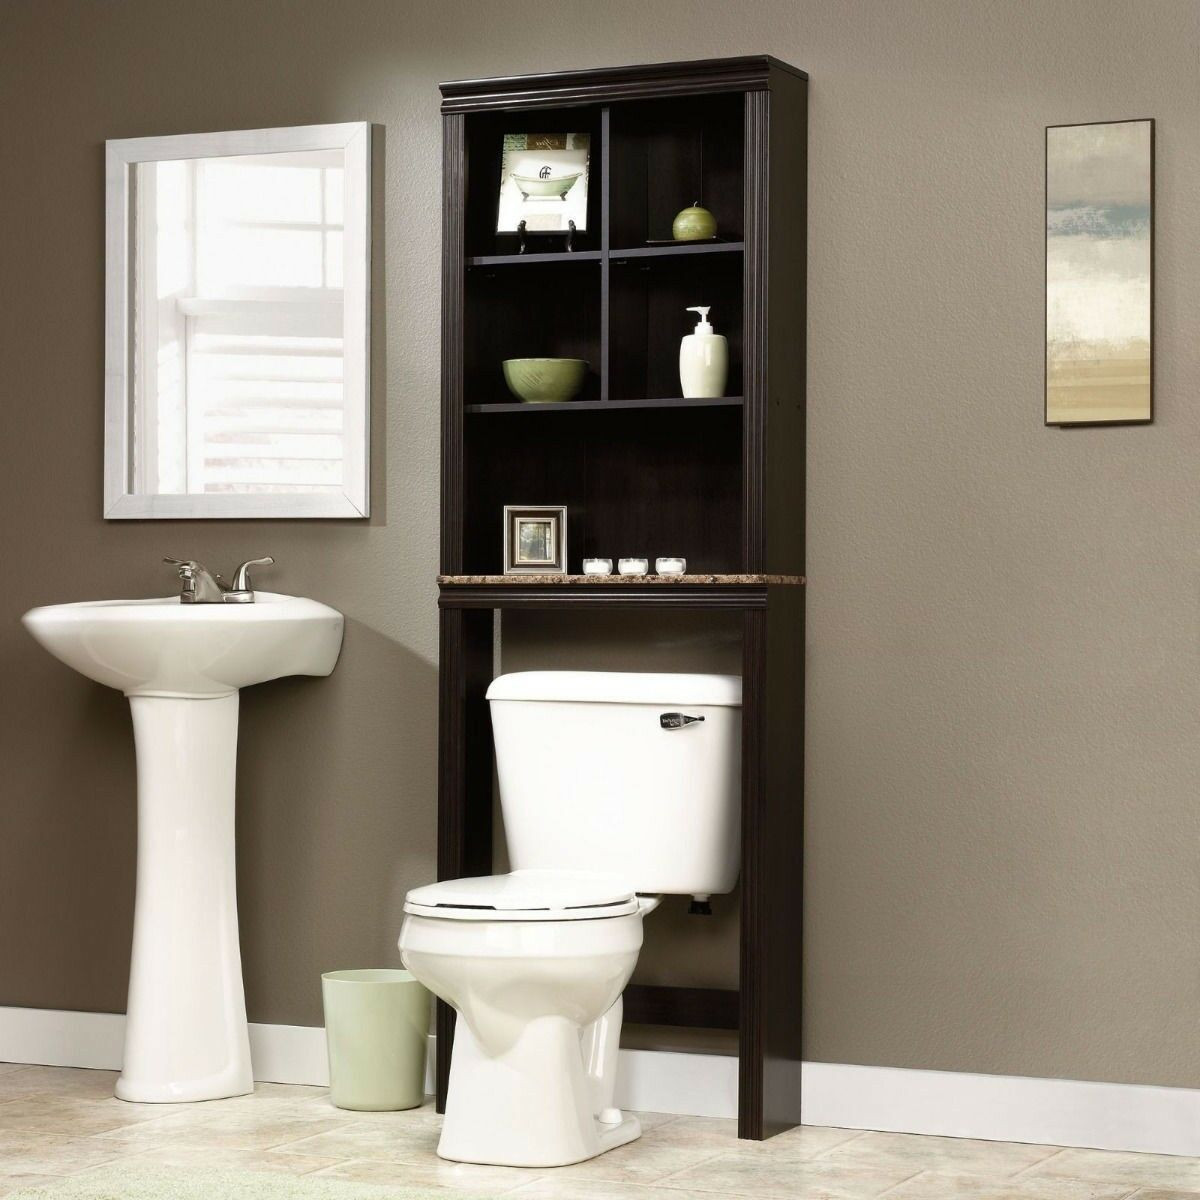 Over The Toilet Bathroom Cabinets  Bathroom Cabinet Over Toilet Shelf Space Saver Storage